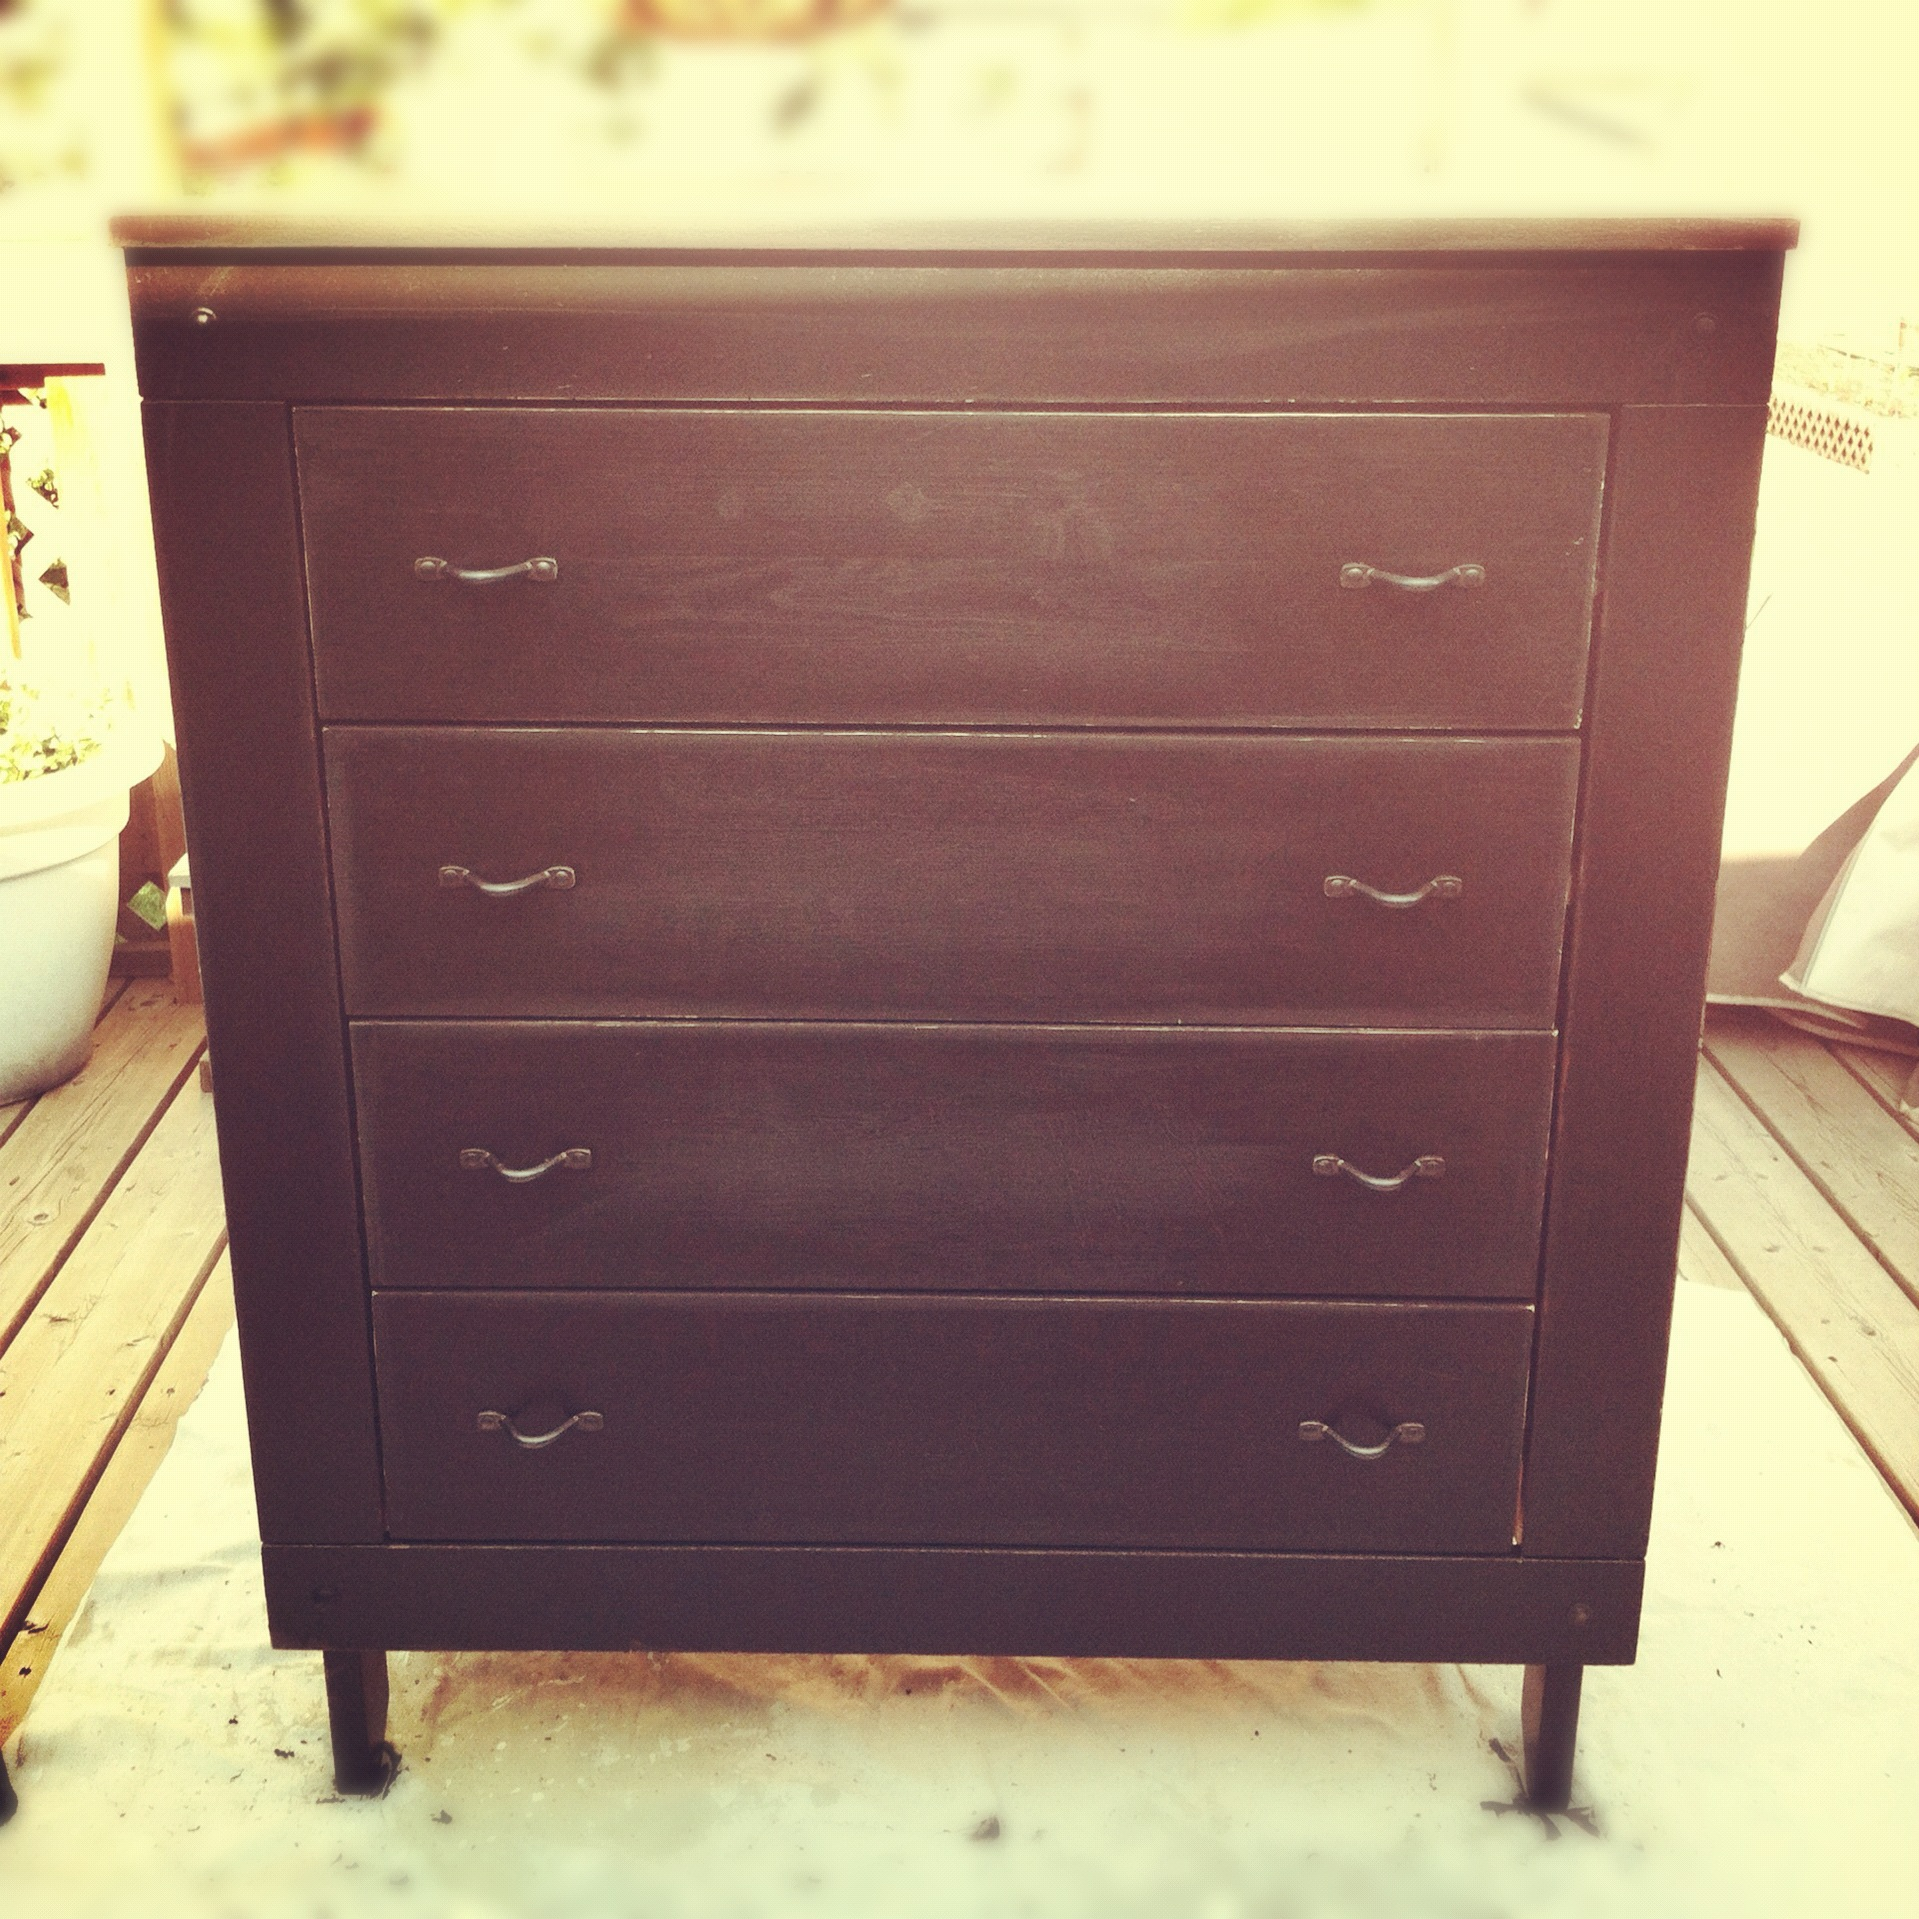 Project 4: Dresser